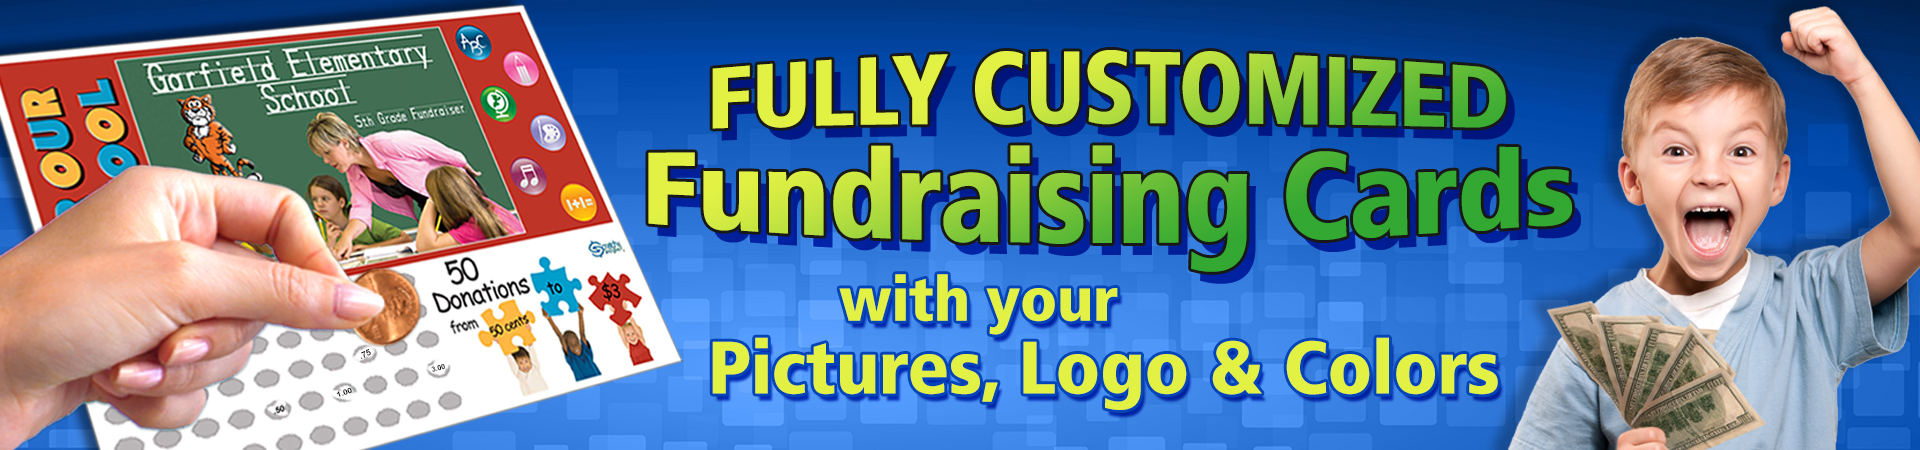 Customized Fundraising Cards